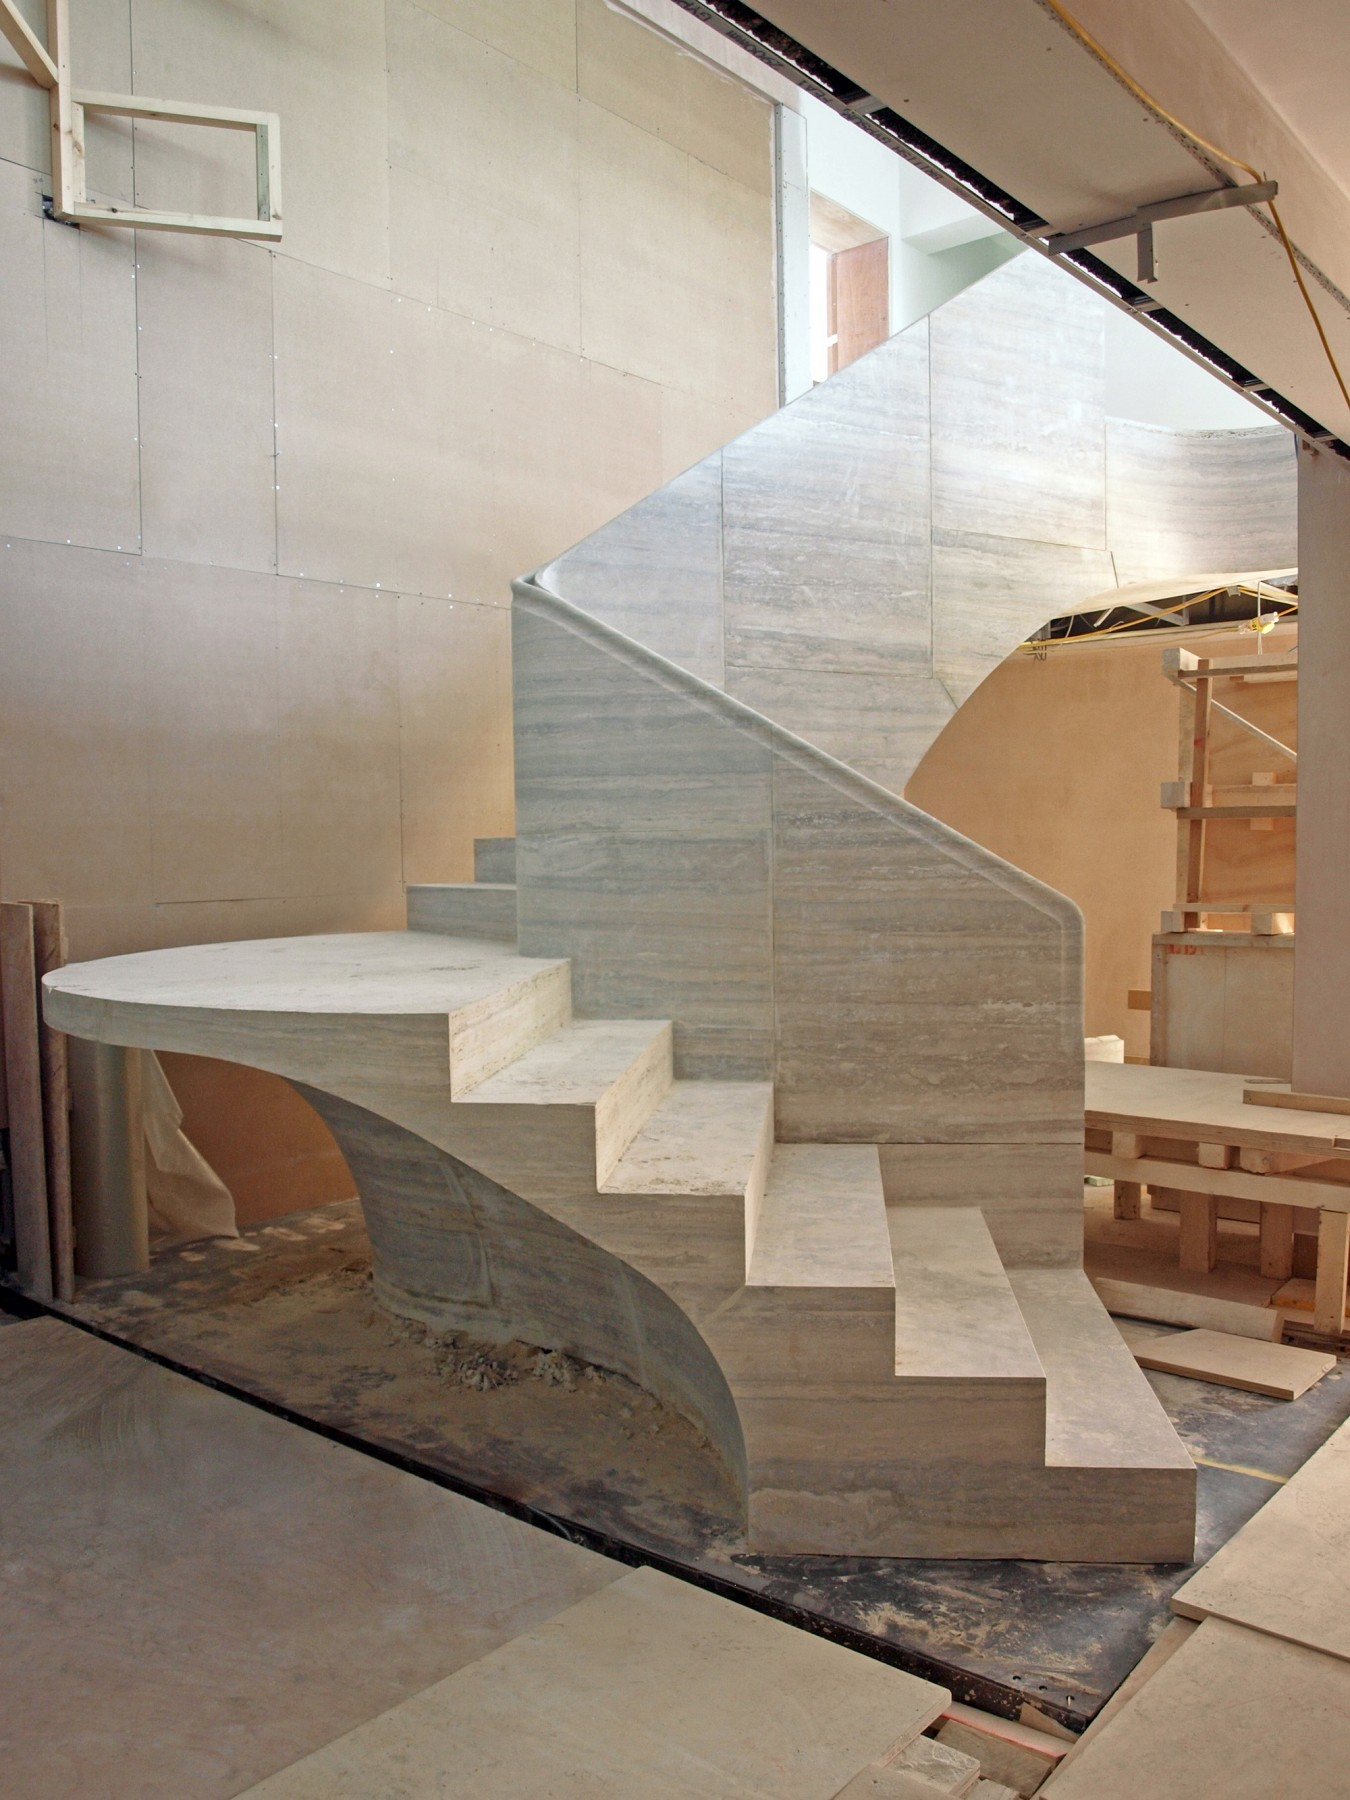 St-James-Place-Park-Denys-Lasdun-Spencer-House-modernist-contemporary-London-residential-home-Jamie-Fobert-Architects-staircase-1